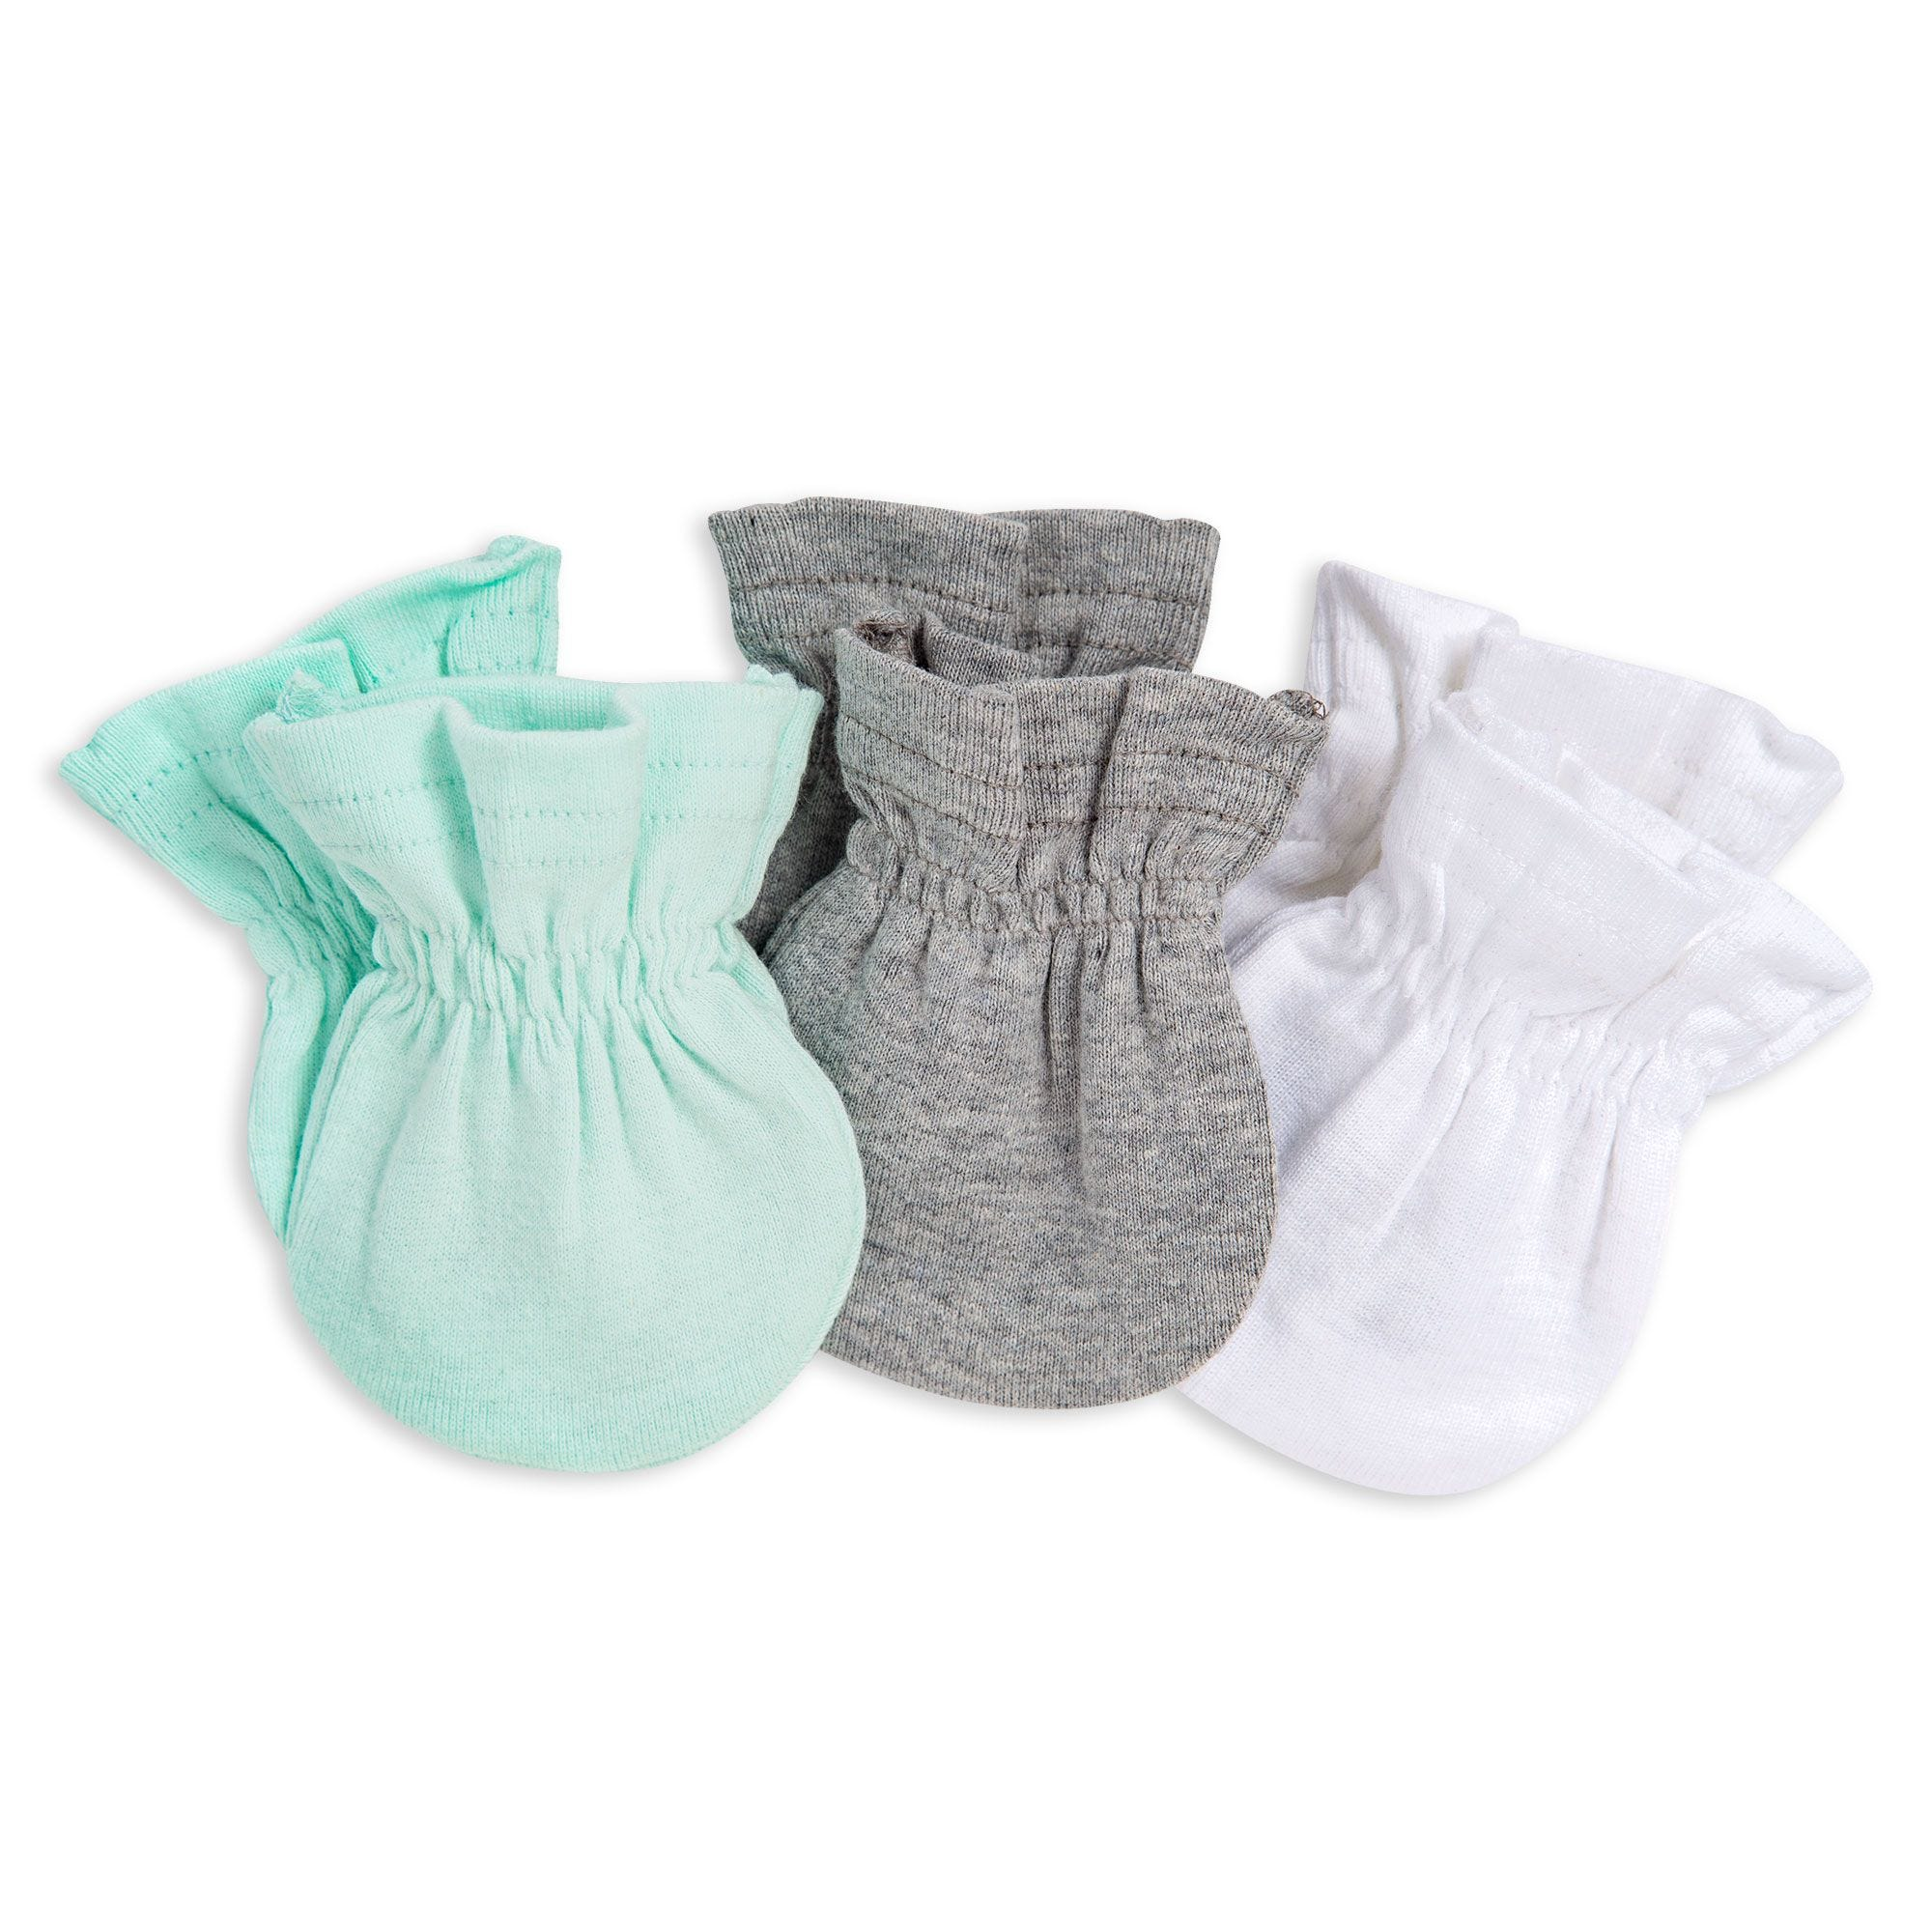 095a0485e 3 Pack Organic Baby Mittens